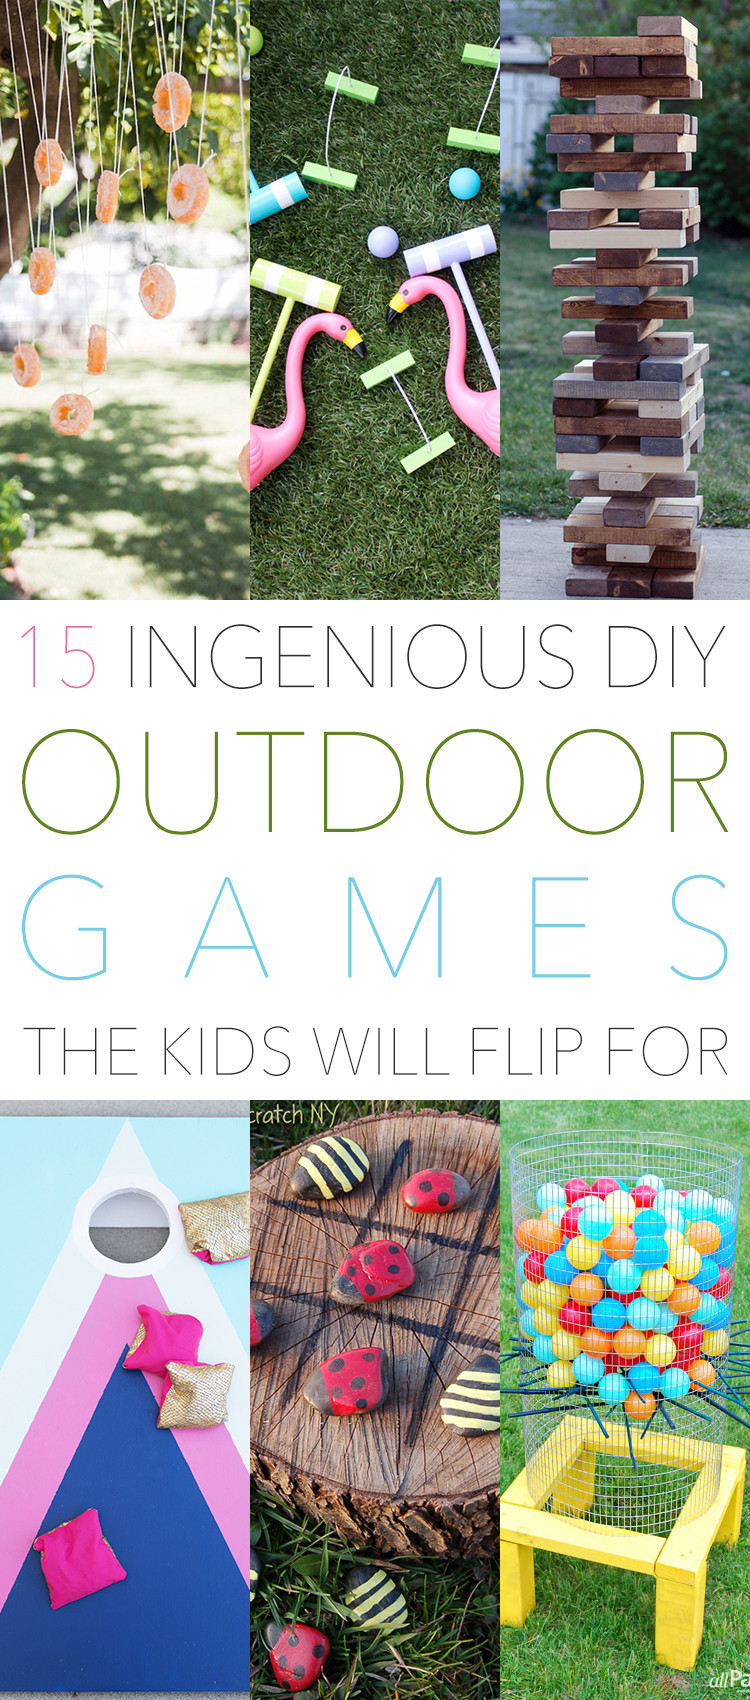 Best ideas about DIY Outdoor Games For Kids . Save or Pin 15 Ingenious DIY Outdoor Games The Kids Will Flip For Now.